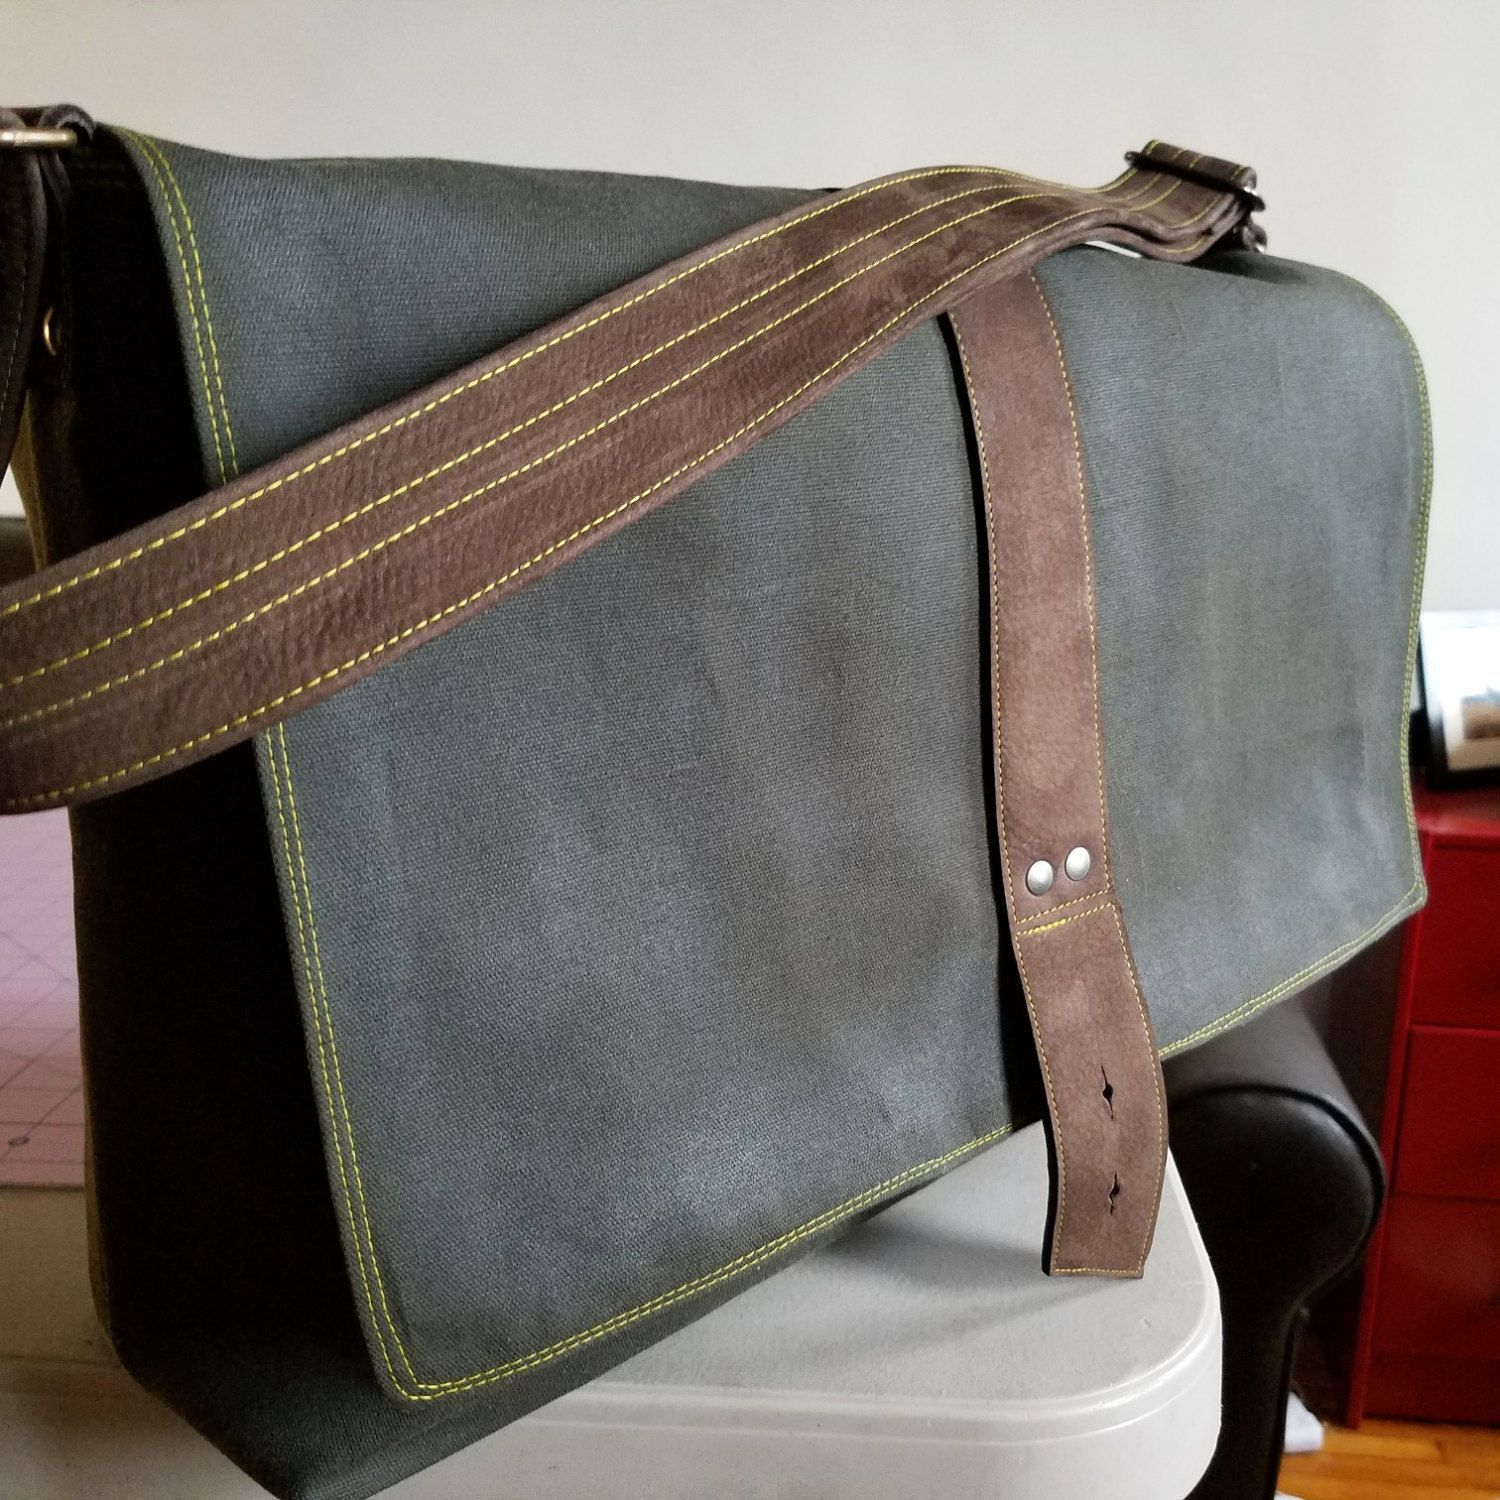 Hunter Green Sloane Messenger Bag with yellow stitching for a more  sporty-casual vibe. ab2fda362e803